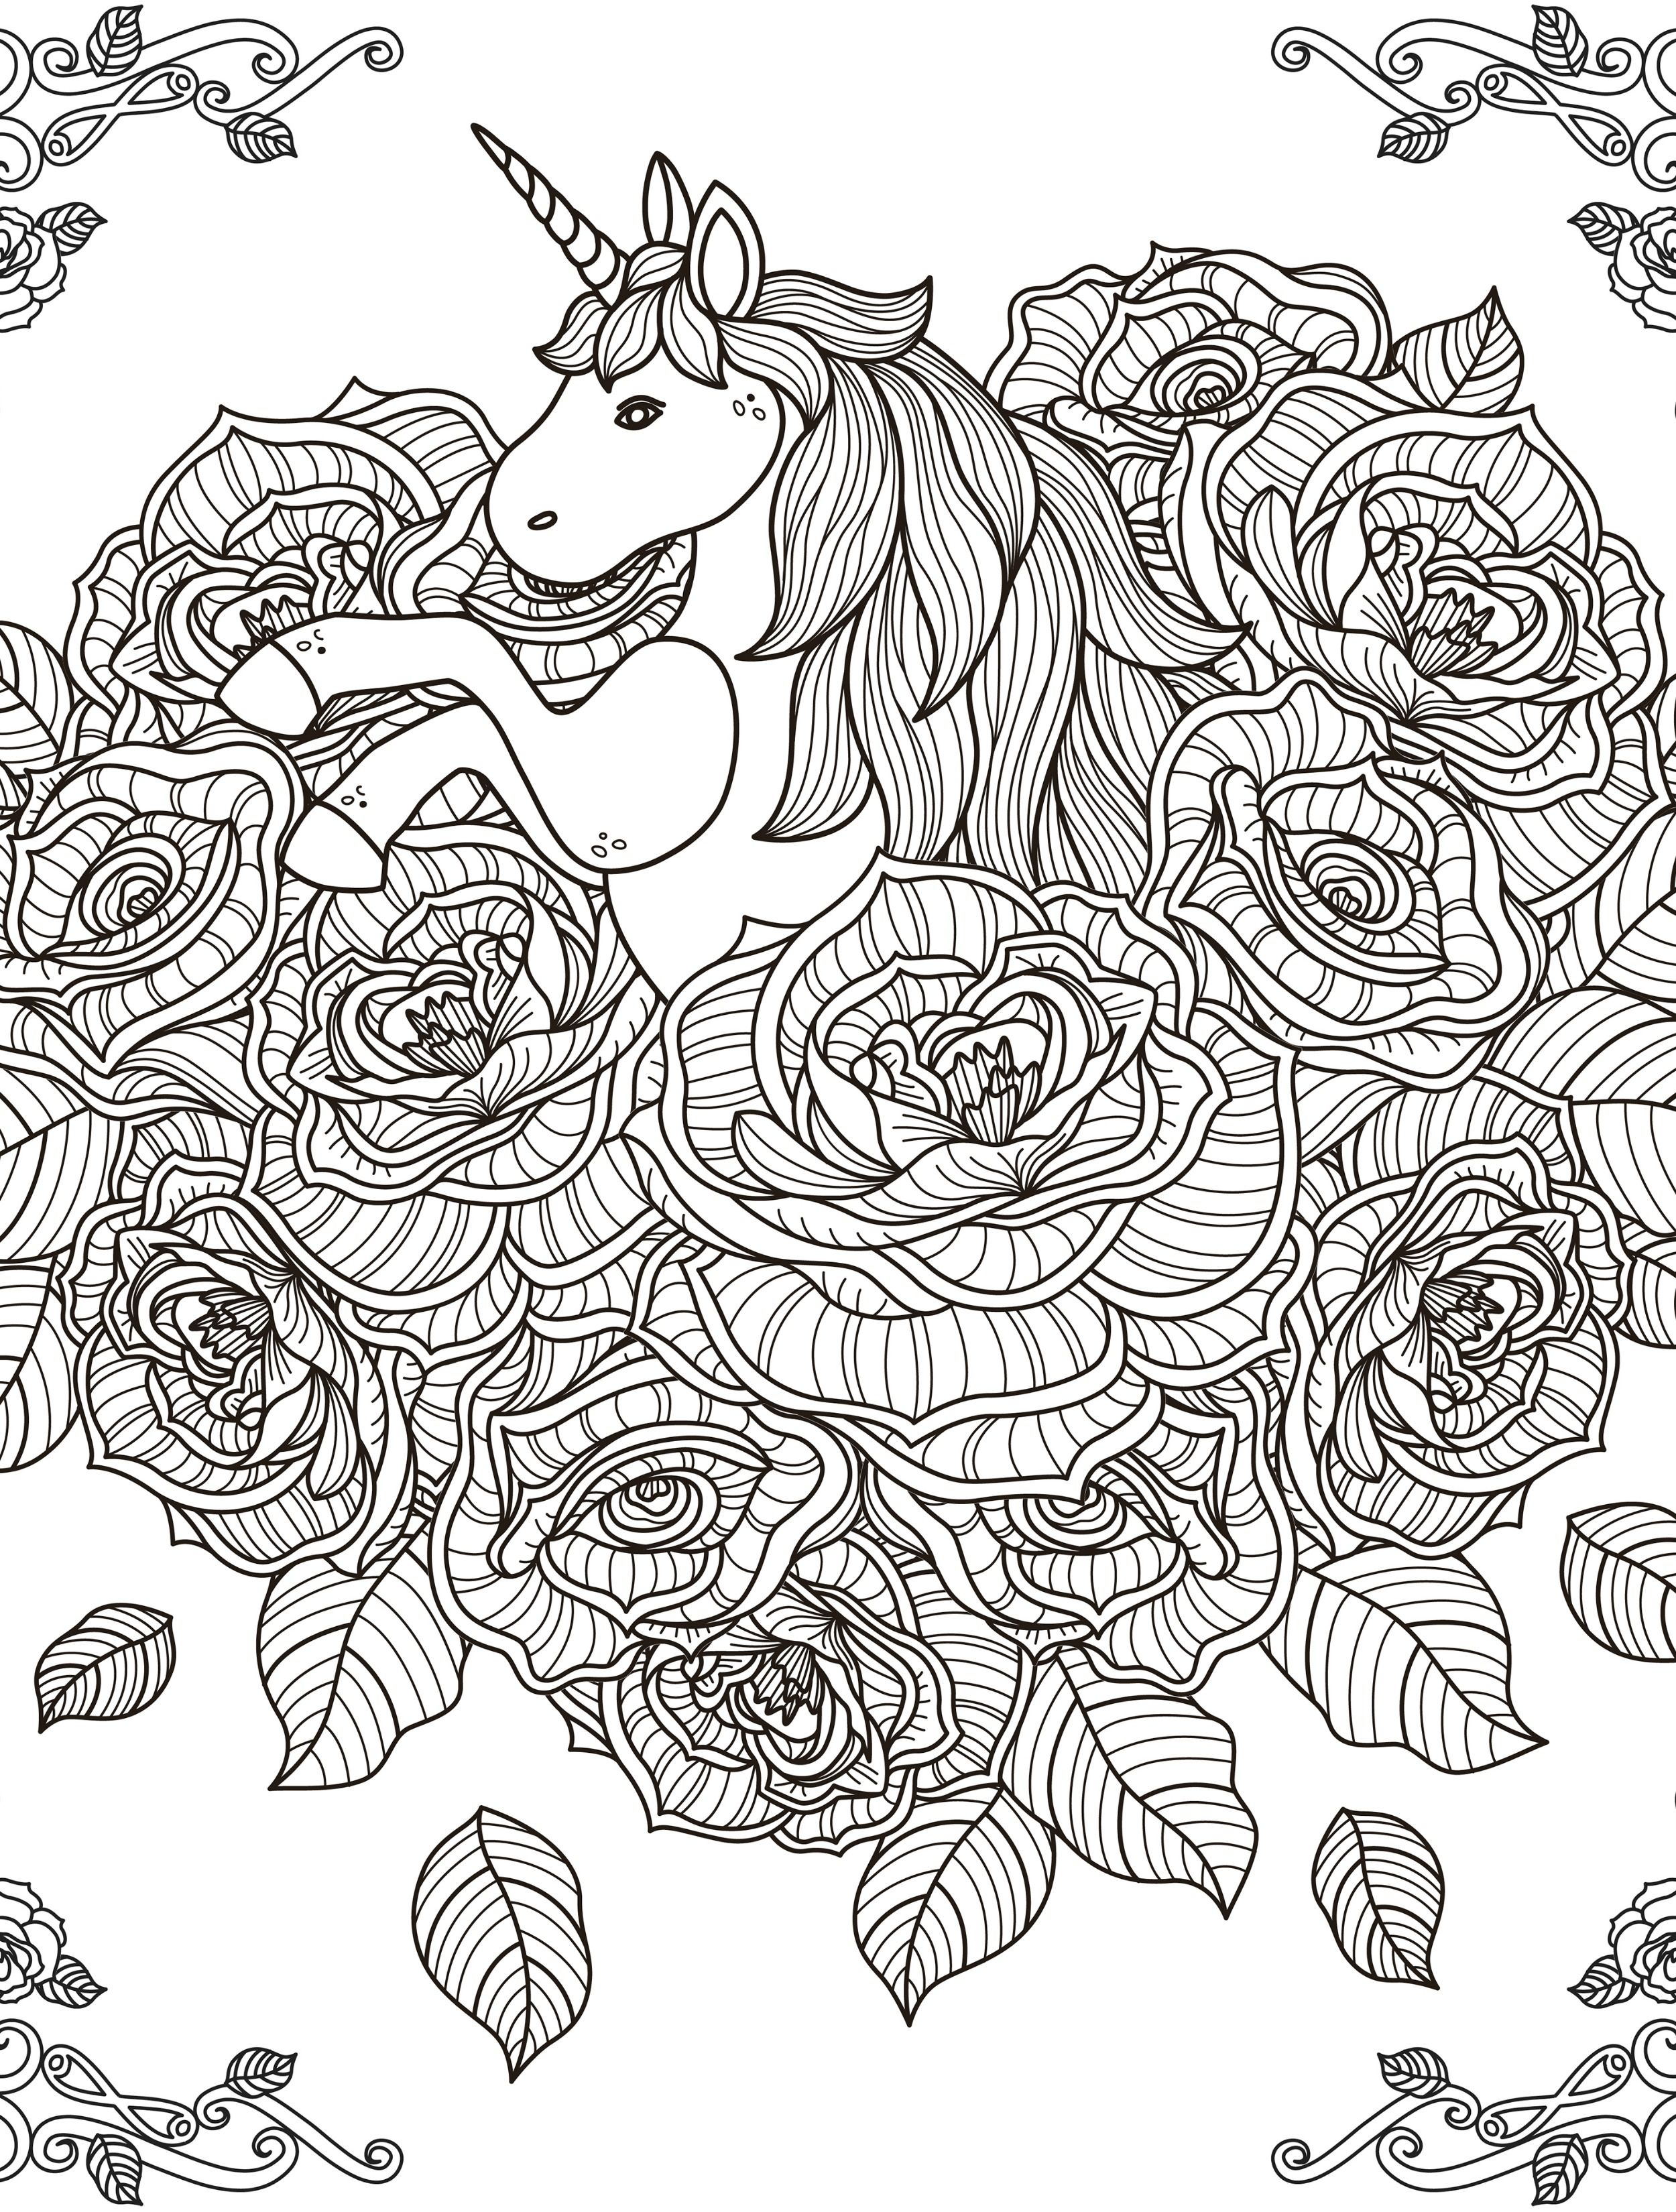 unicorn-coloring-page-for-adults-printable1.jpg 2,500×3,300 pixels ...